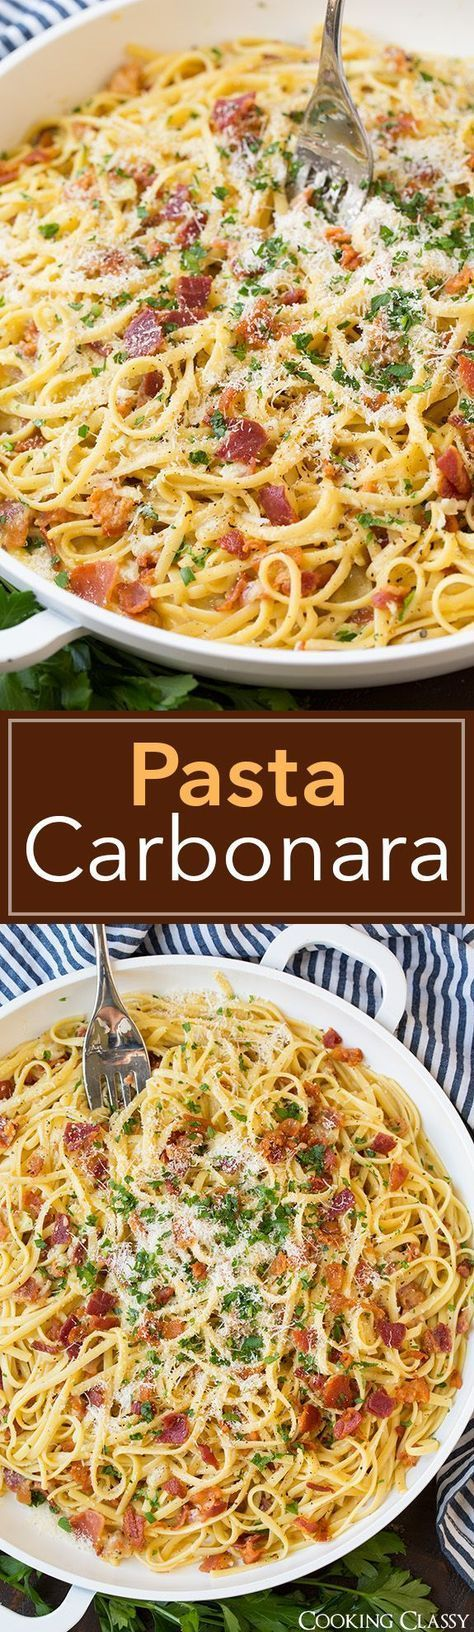 Pasta Carbonara - this is the BEST Pasta Carbonara! Easy enough for a weeknight meal yet delicious enough to serve to guests on the weekend!